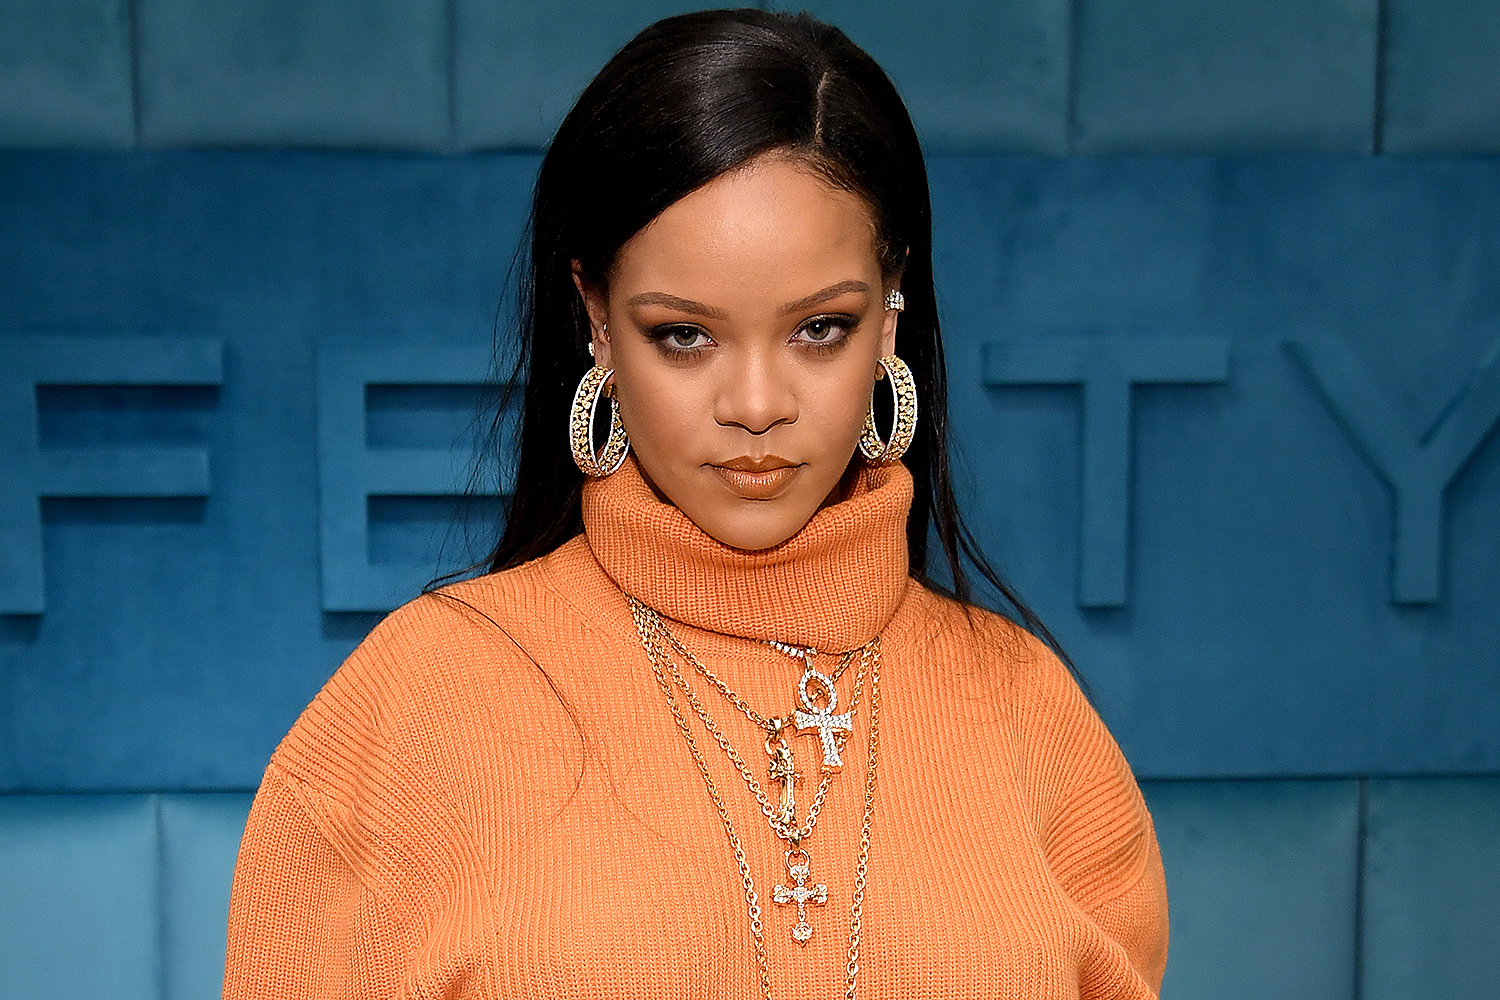 Rihanna Celebrates Her Fenty Perfume Selling Out Hours After Launch with Caviar in Bed